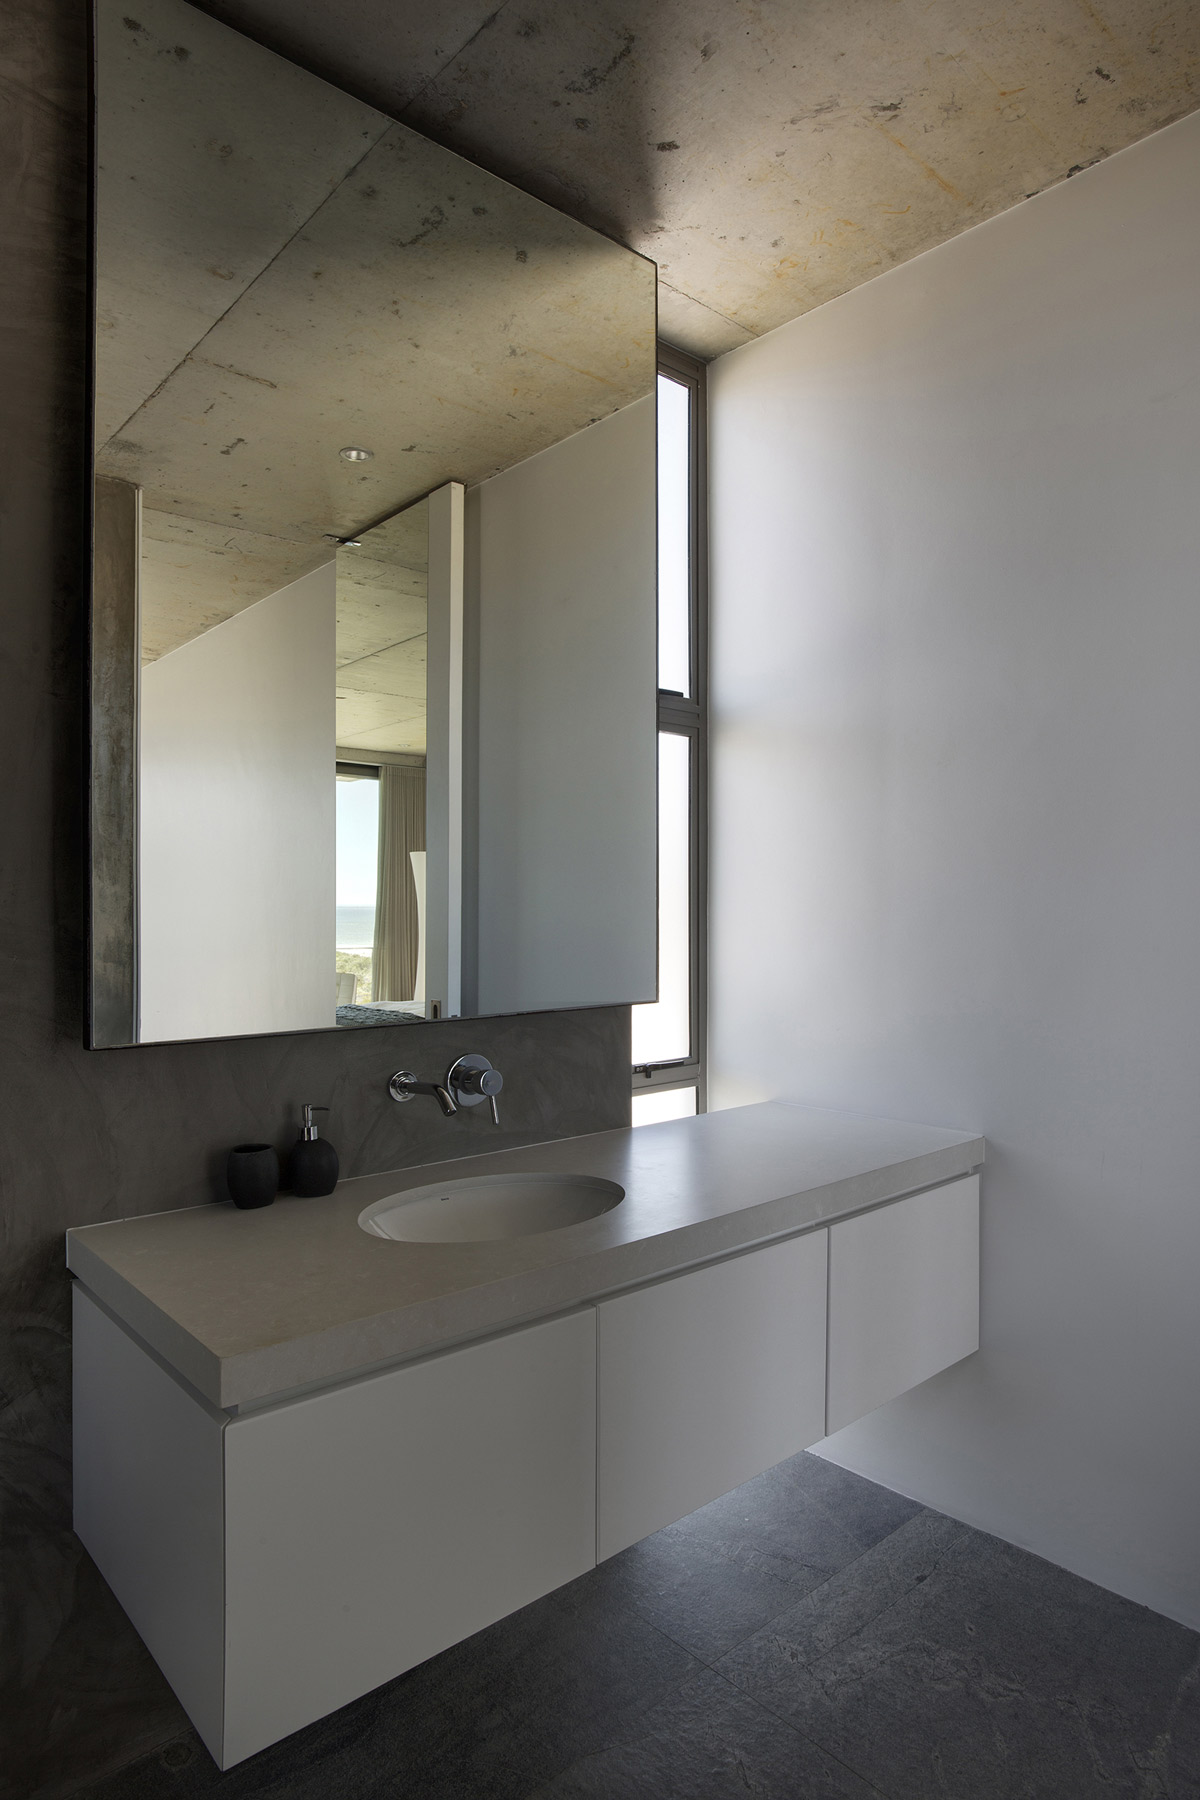 Bathroom, Mirror, Sink, Holiday Home in Yzerfontein, South Africa